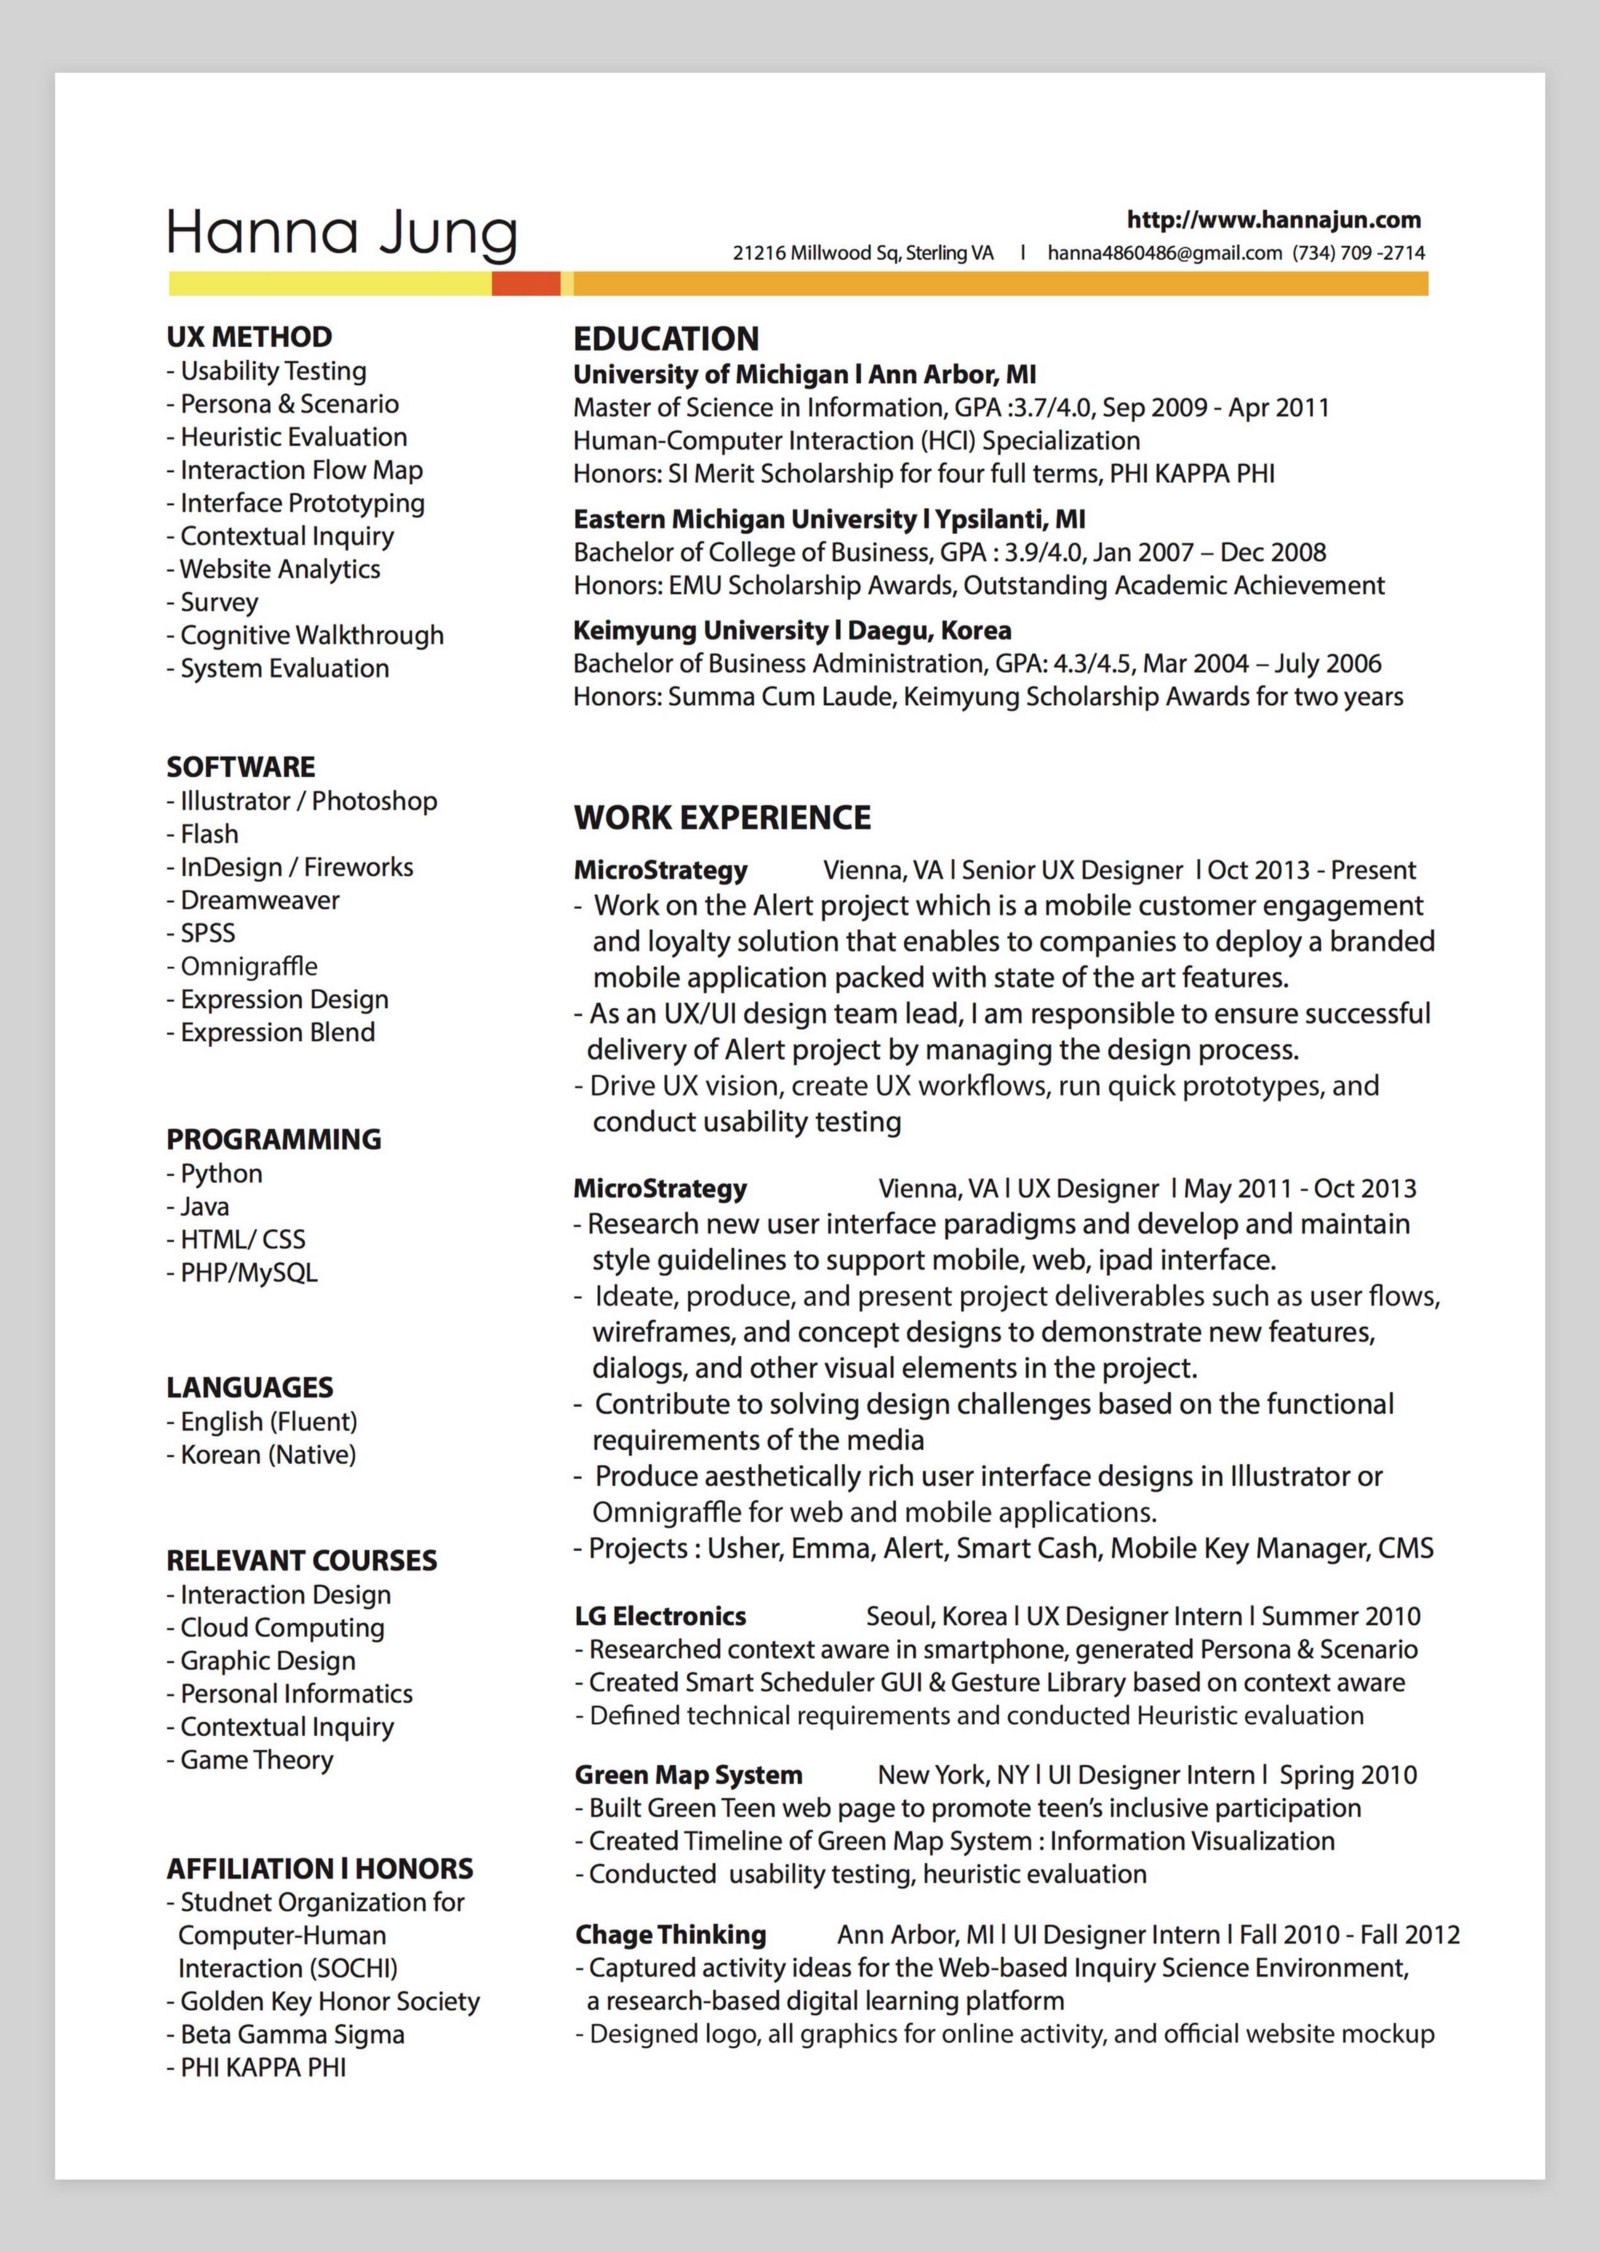 httpbestfolioscomresumehanna jung - Resume Graphic Design